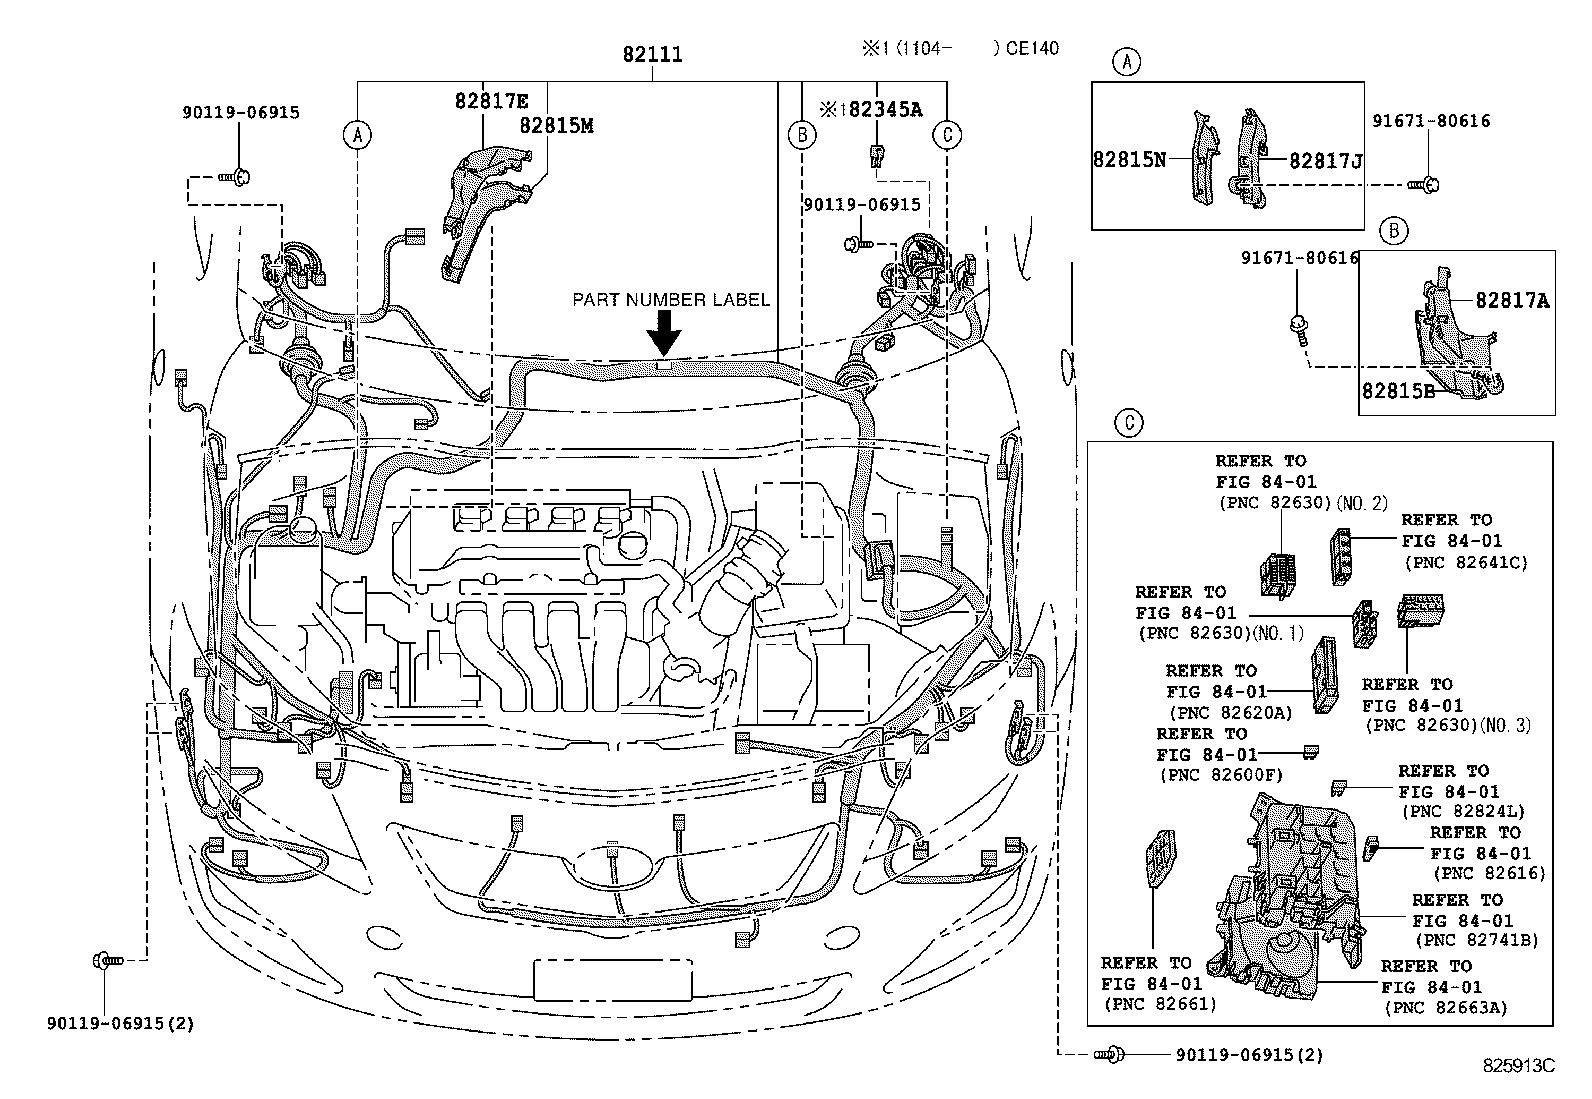 02 toyota solara fuse box diagram html